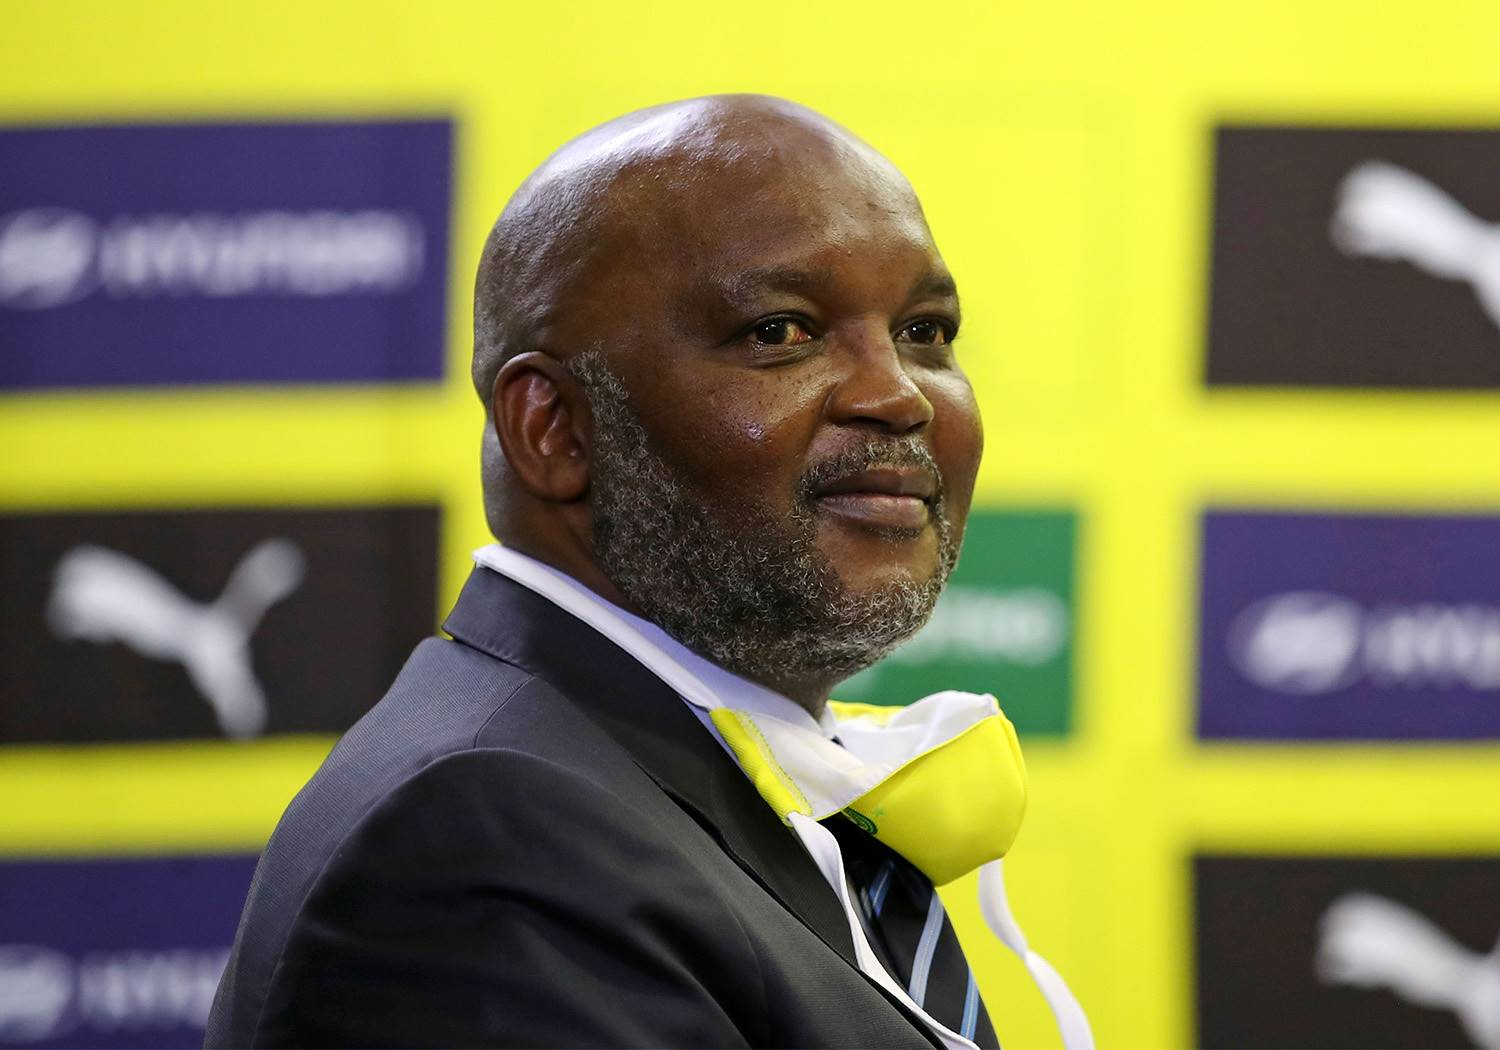 Mosimane's chance to work in Egypt also comes at a time when the Ahly starting line-up is probably still fresh in his head. Picture: Mamelodi Sundowns